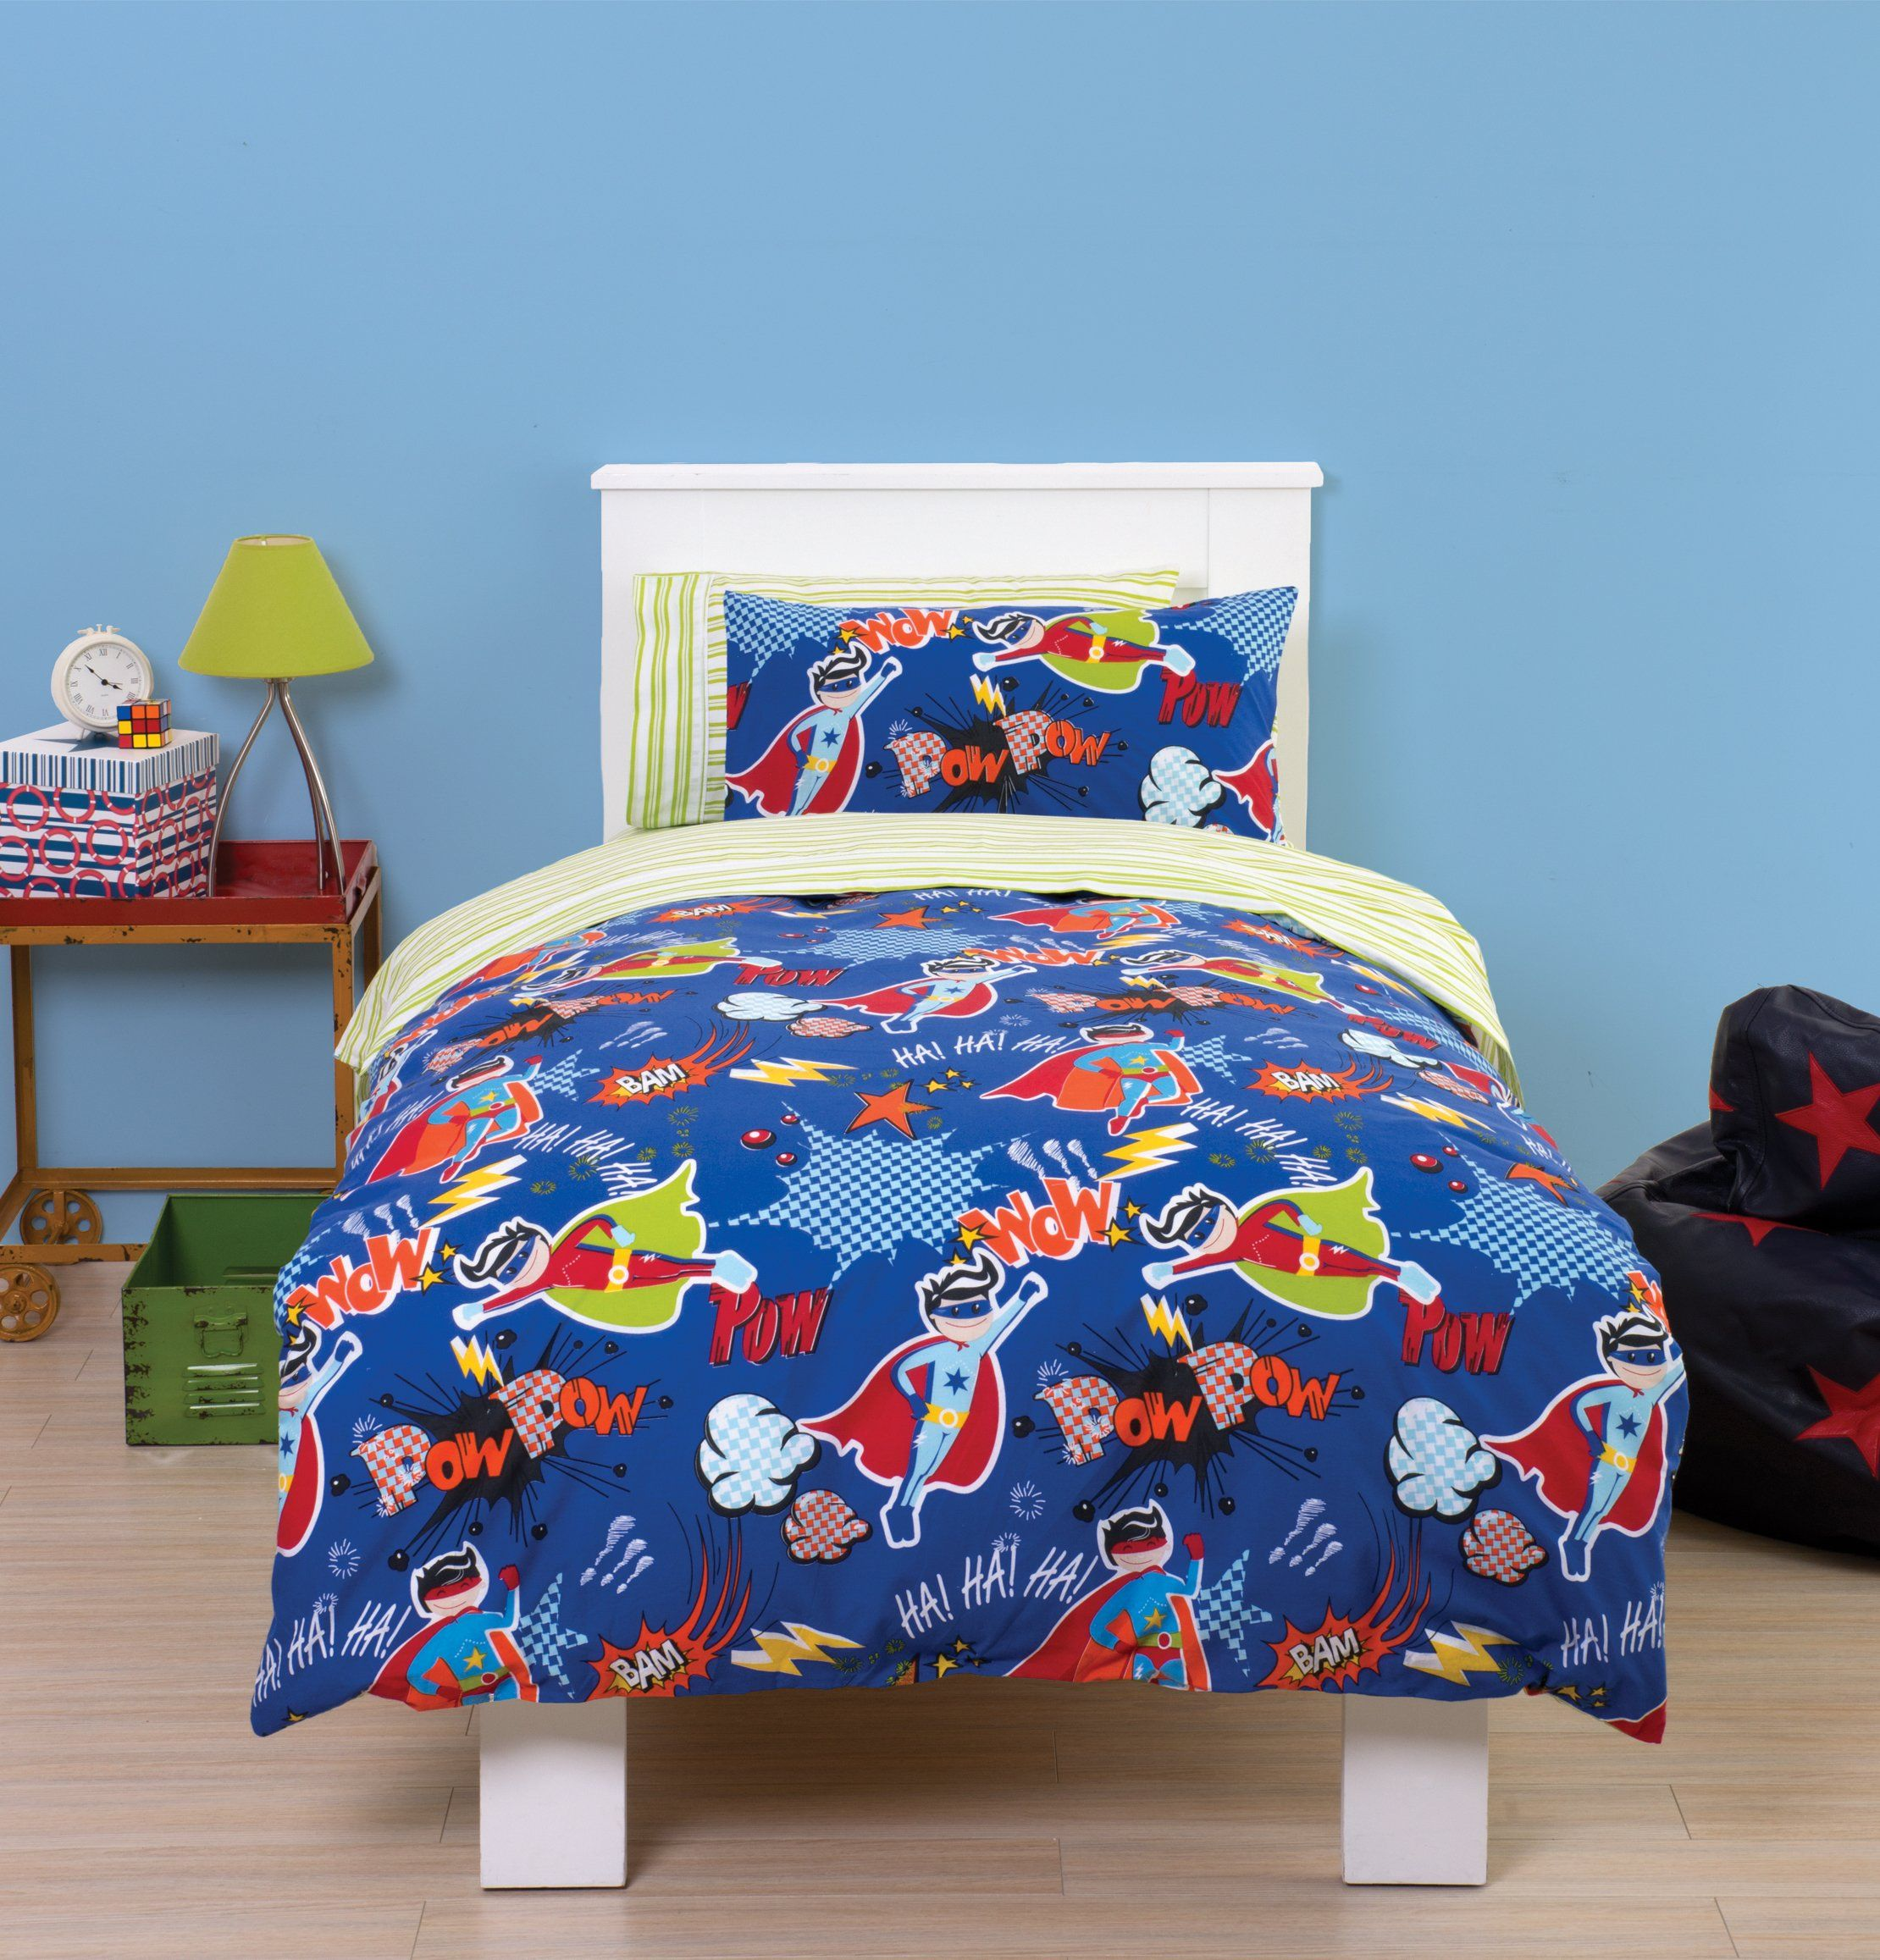 bedrooms toddler pictures size bedding furniture collections makeovers bedroom sets ideas decorating comforter kids queen boy of kid boys bed full colour organization